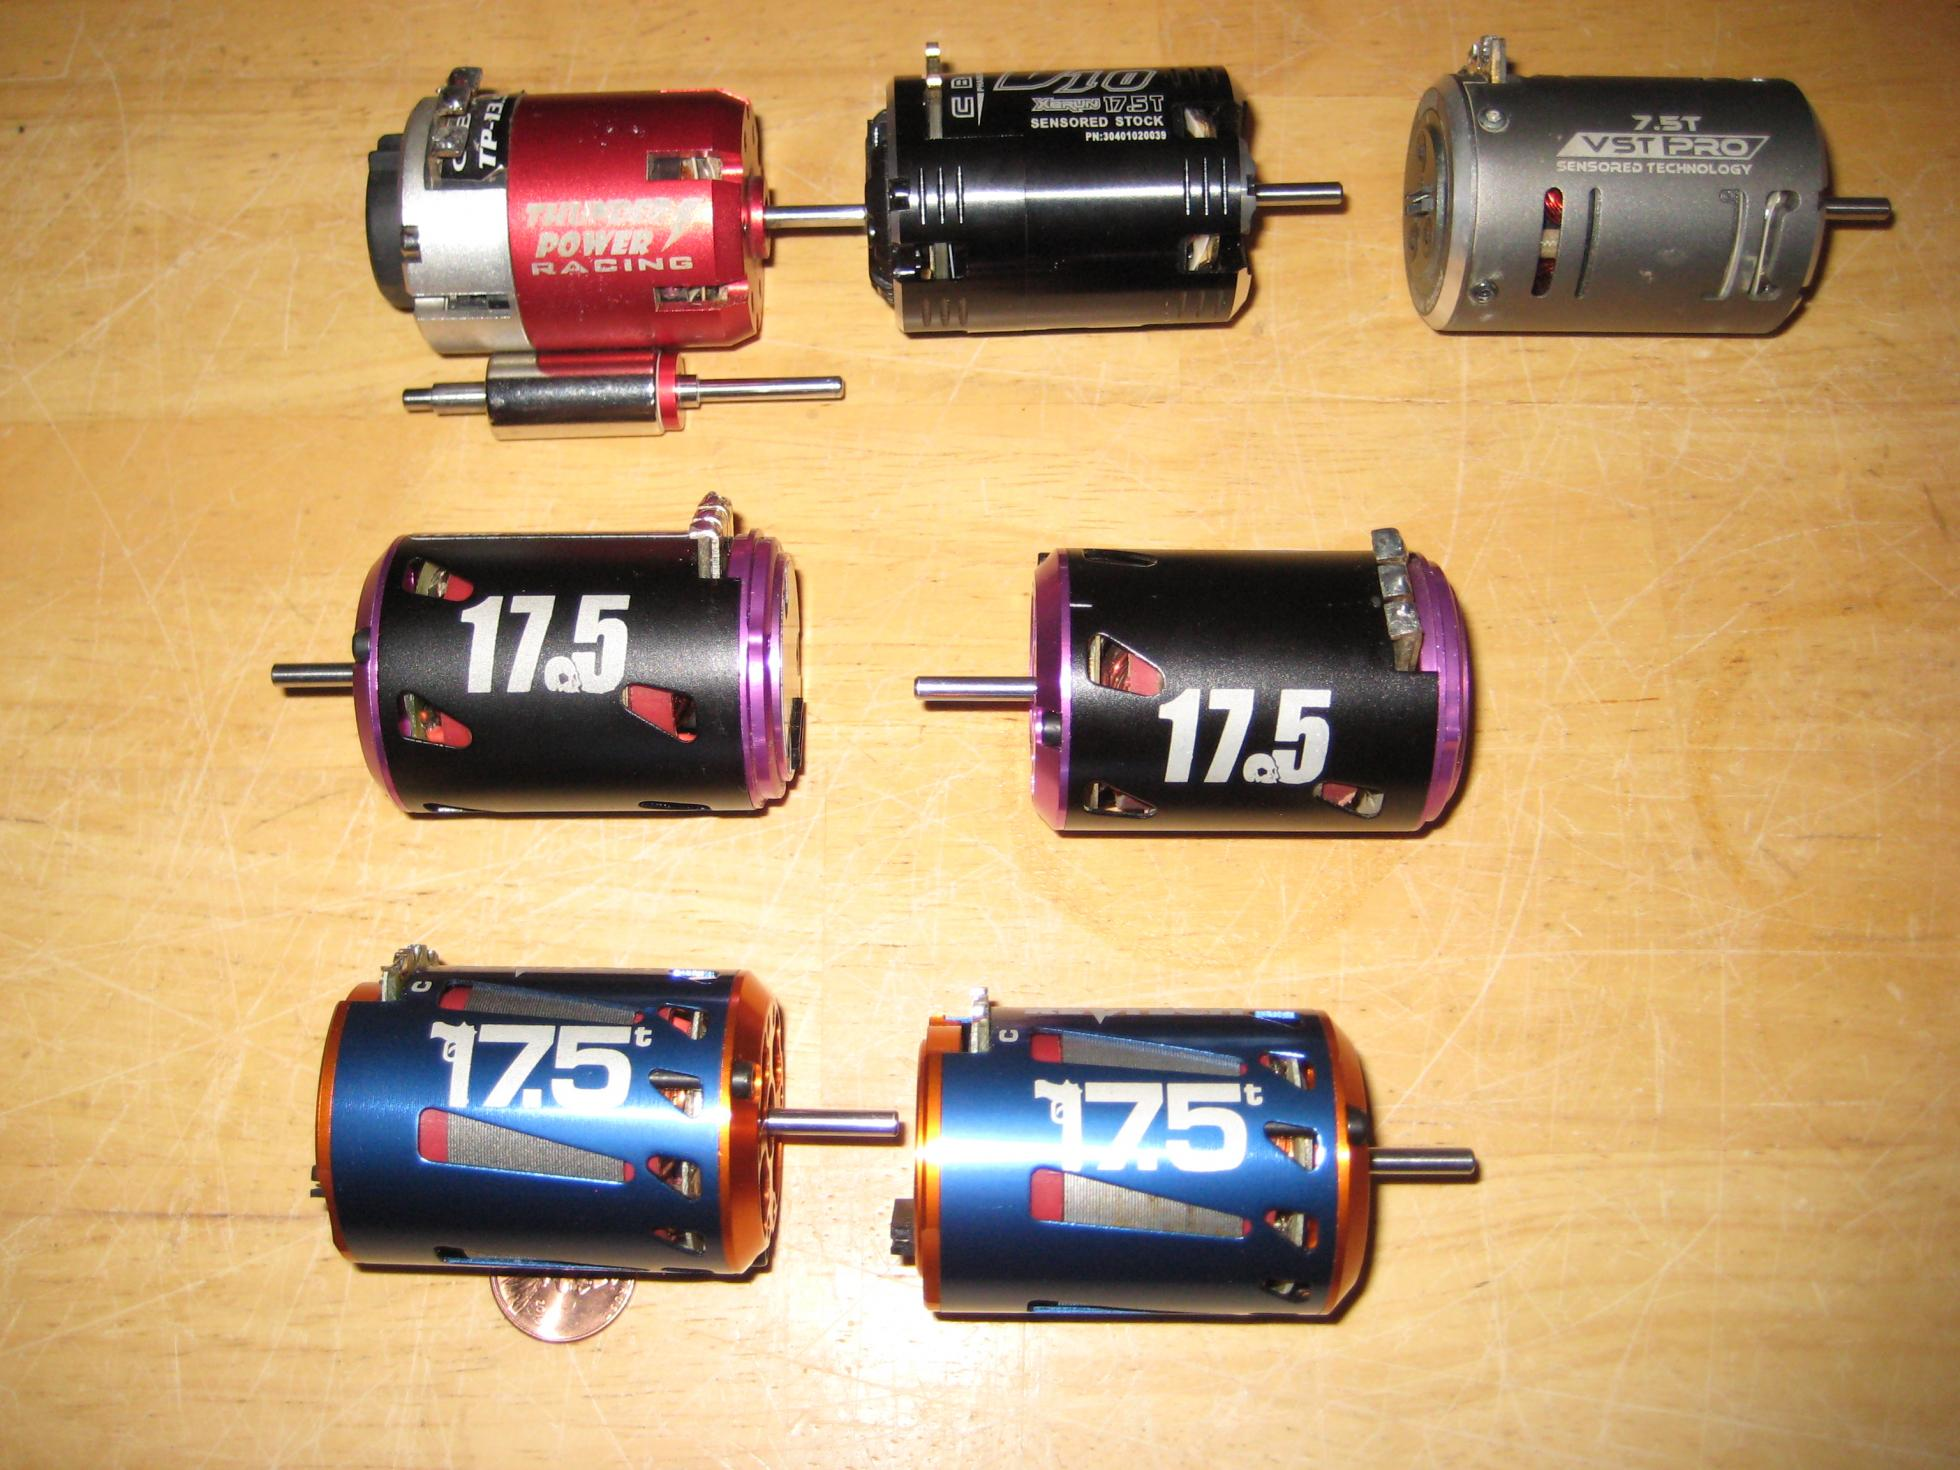 Motors esc servos for sale r c tech forums Servo motor sale